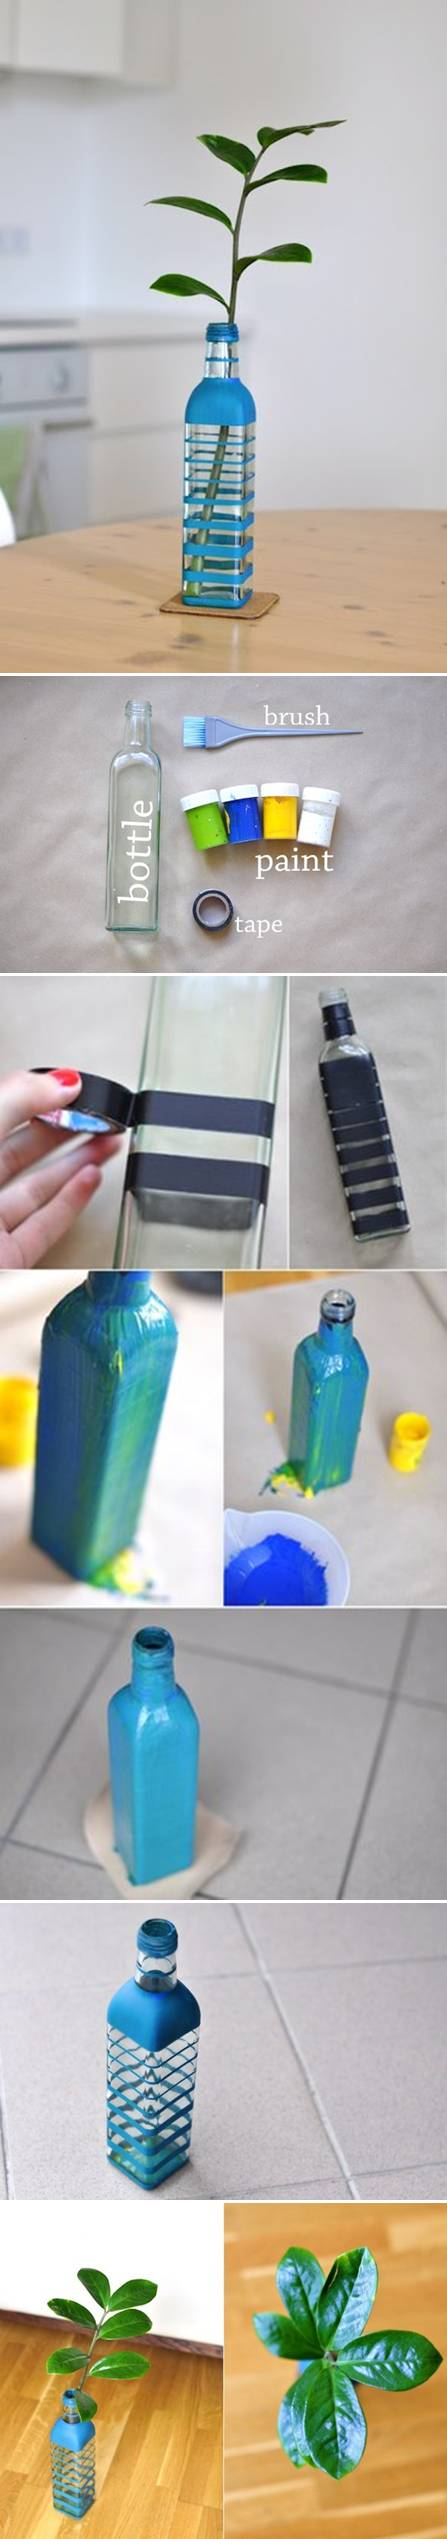 How To Make Colored Bottle Vase step by step DIY tutorial instructions